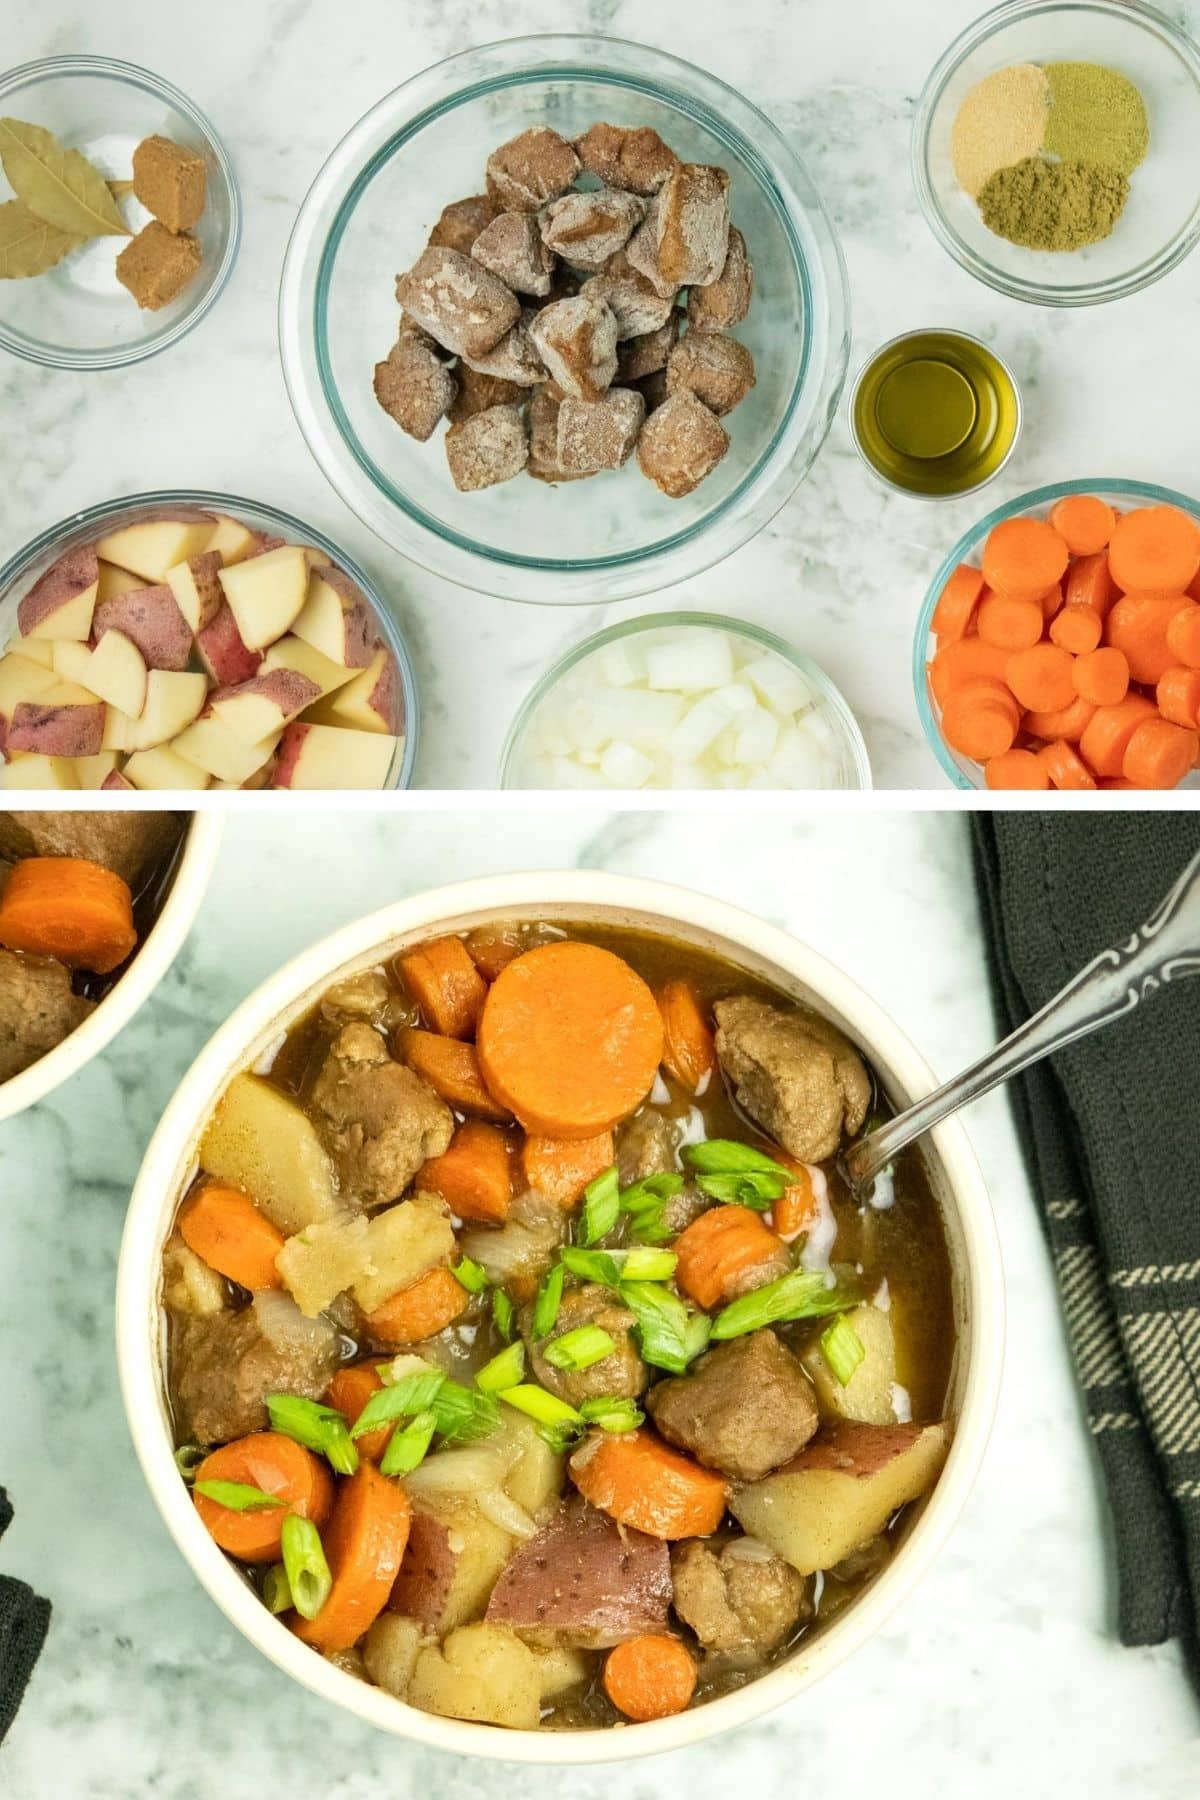 image collage showing stew ingredients and finished beefless stew in a bowl